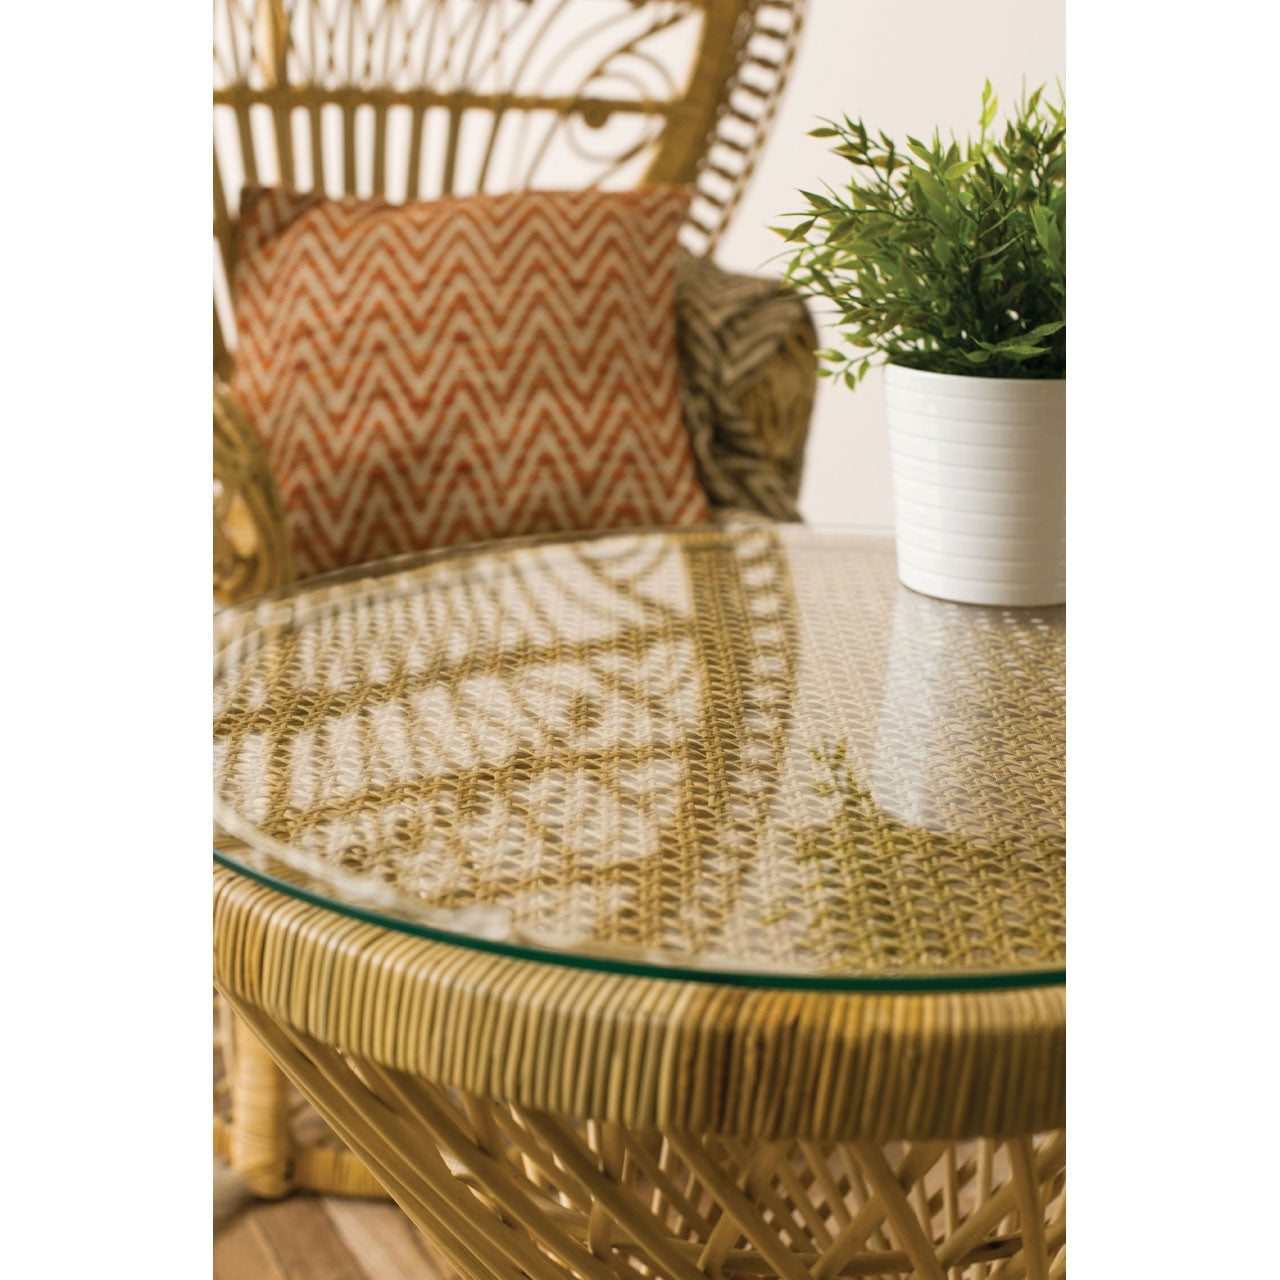 Woodstock Rattan Table Natural